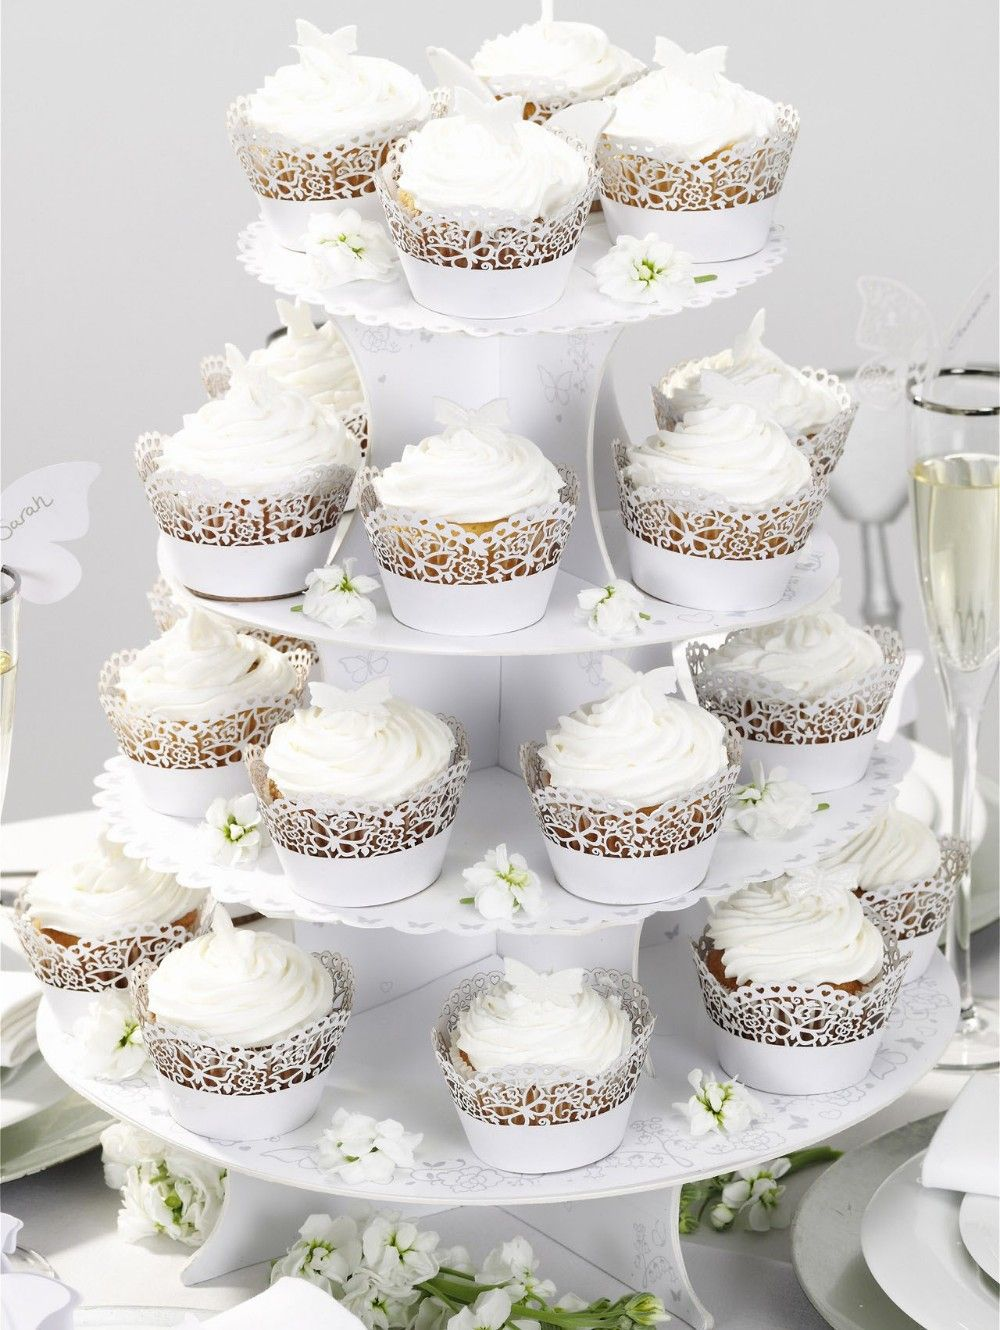 Such a cute cupcake liner! Really pulls the cupcakes to the wedding level.  $0.23